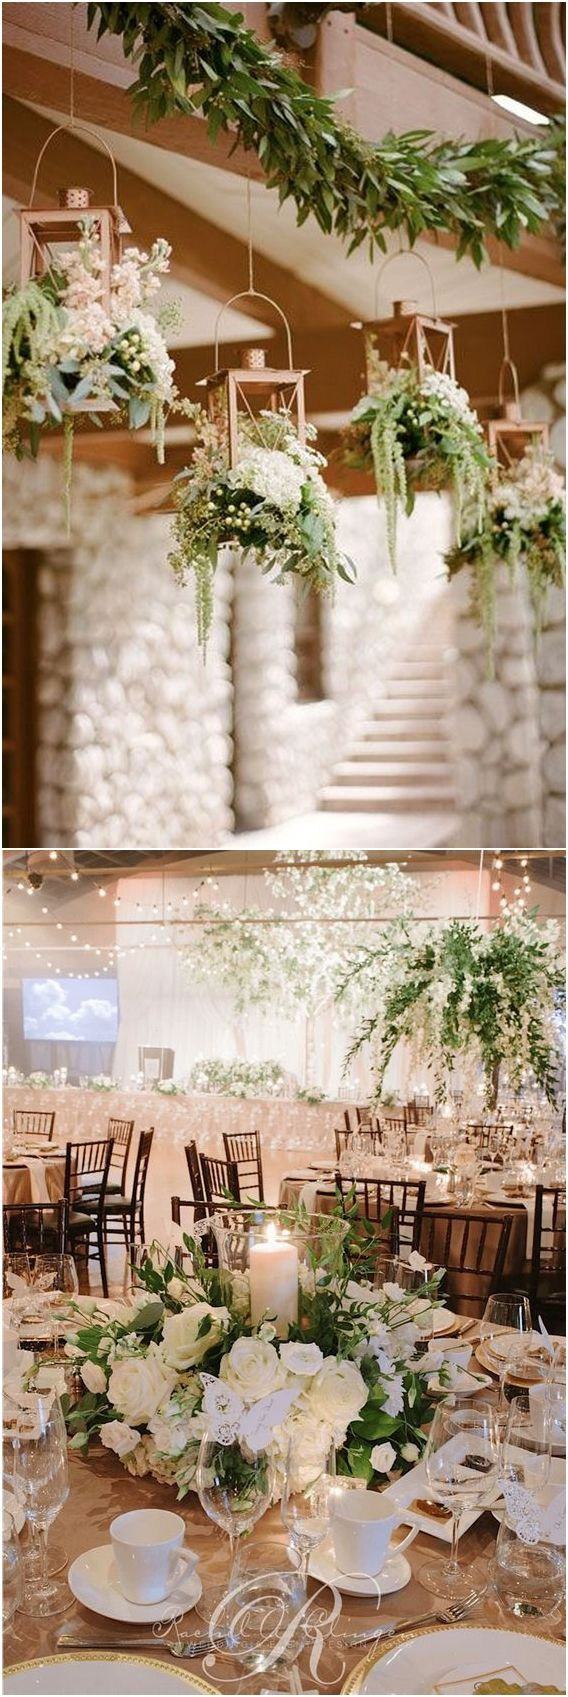 Pinterest Decoration Salle Mariage 2019 Wedding Trend Greenery Wedding Color Ideas Mariage Marion